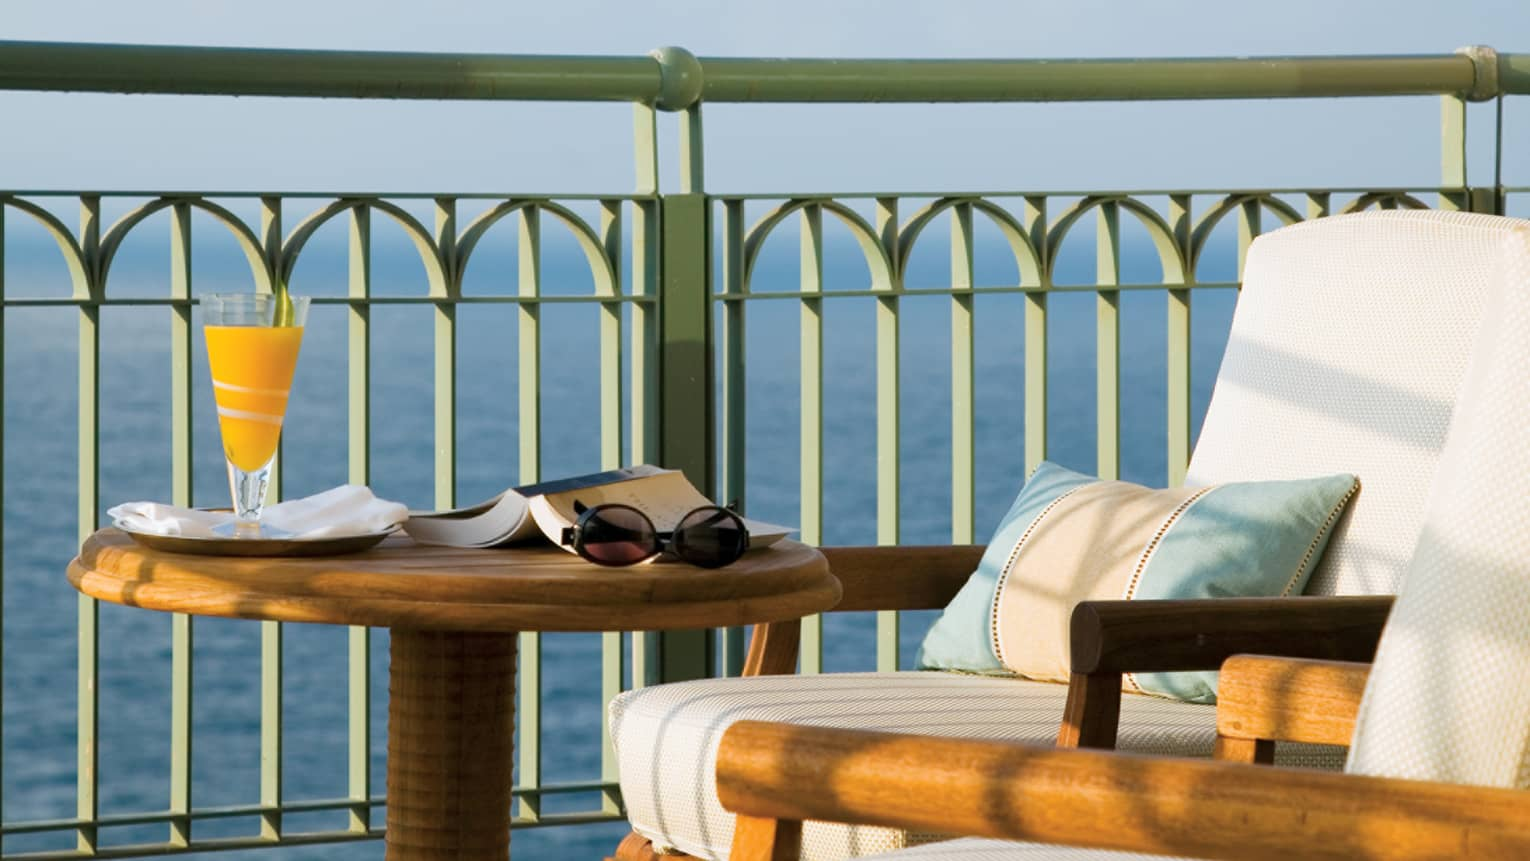 Close-up of Presidential Suite patio round wood table with open book and orange juice, chair cushion, ocean view